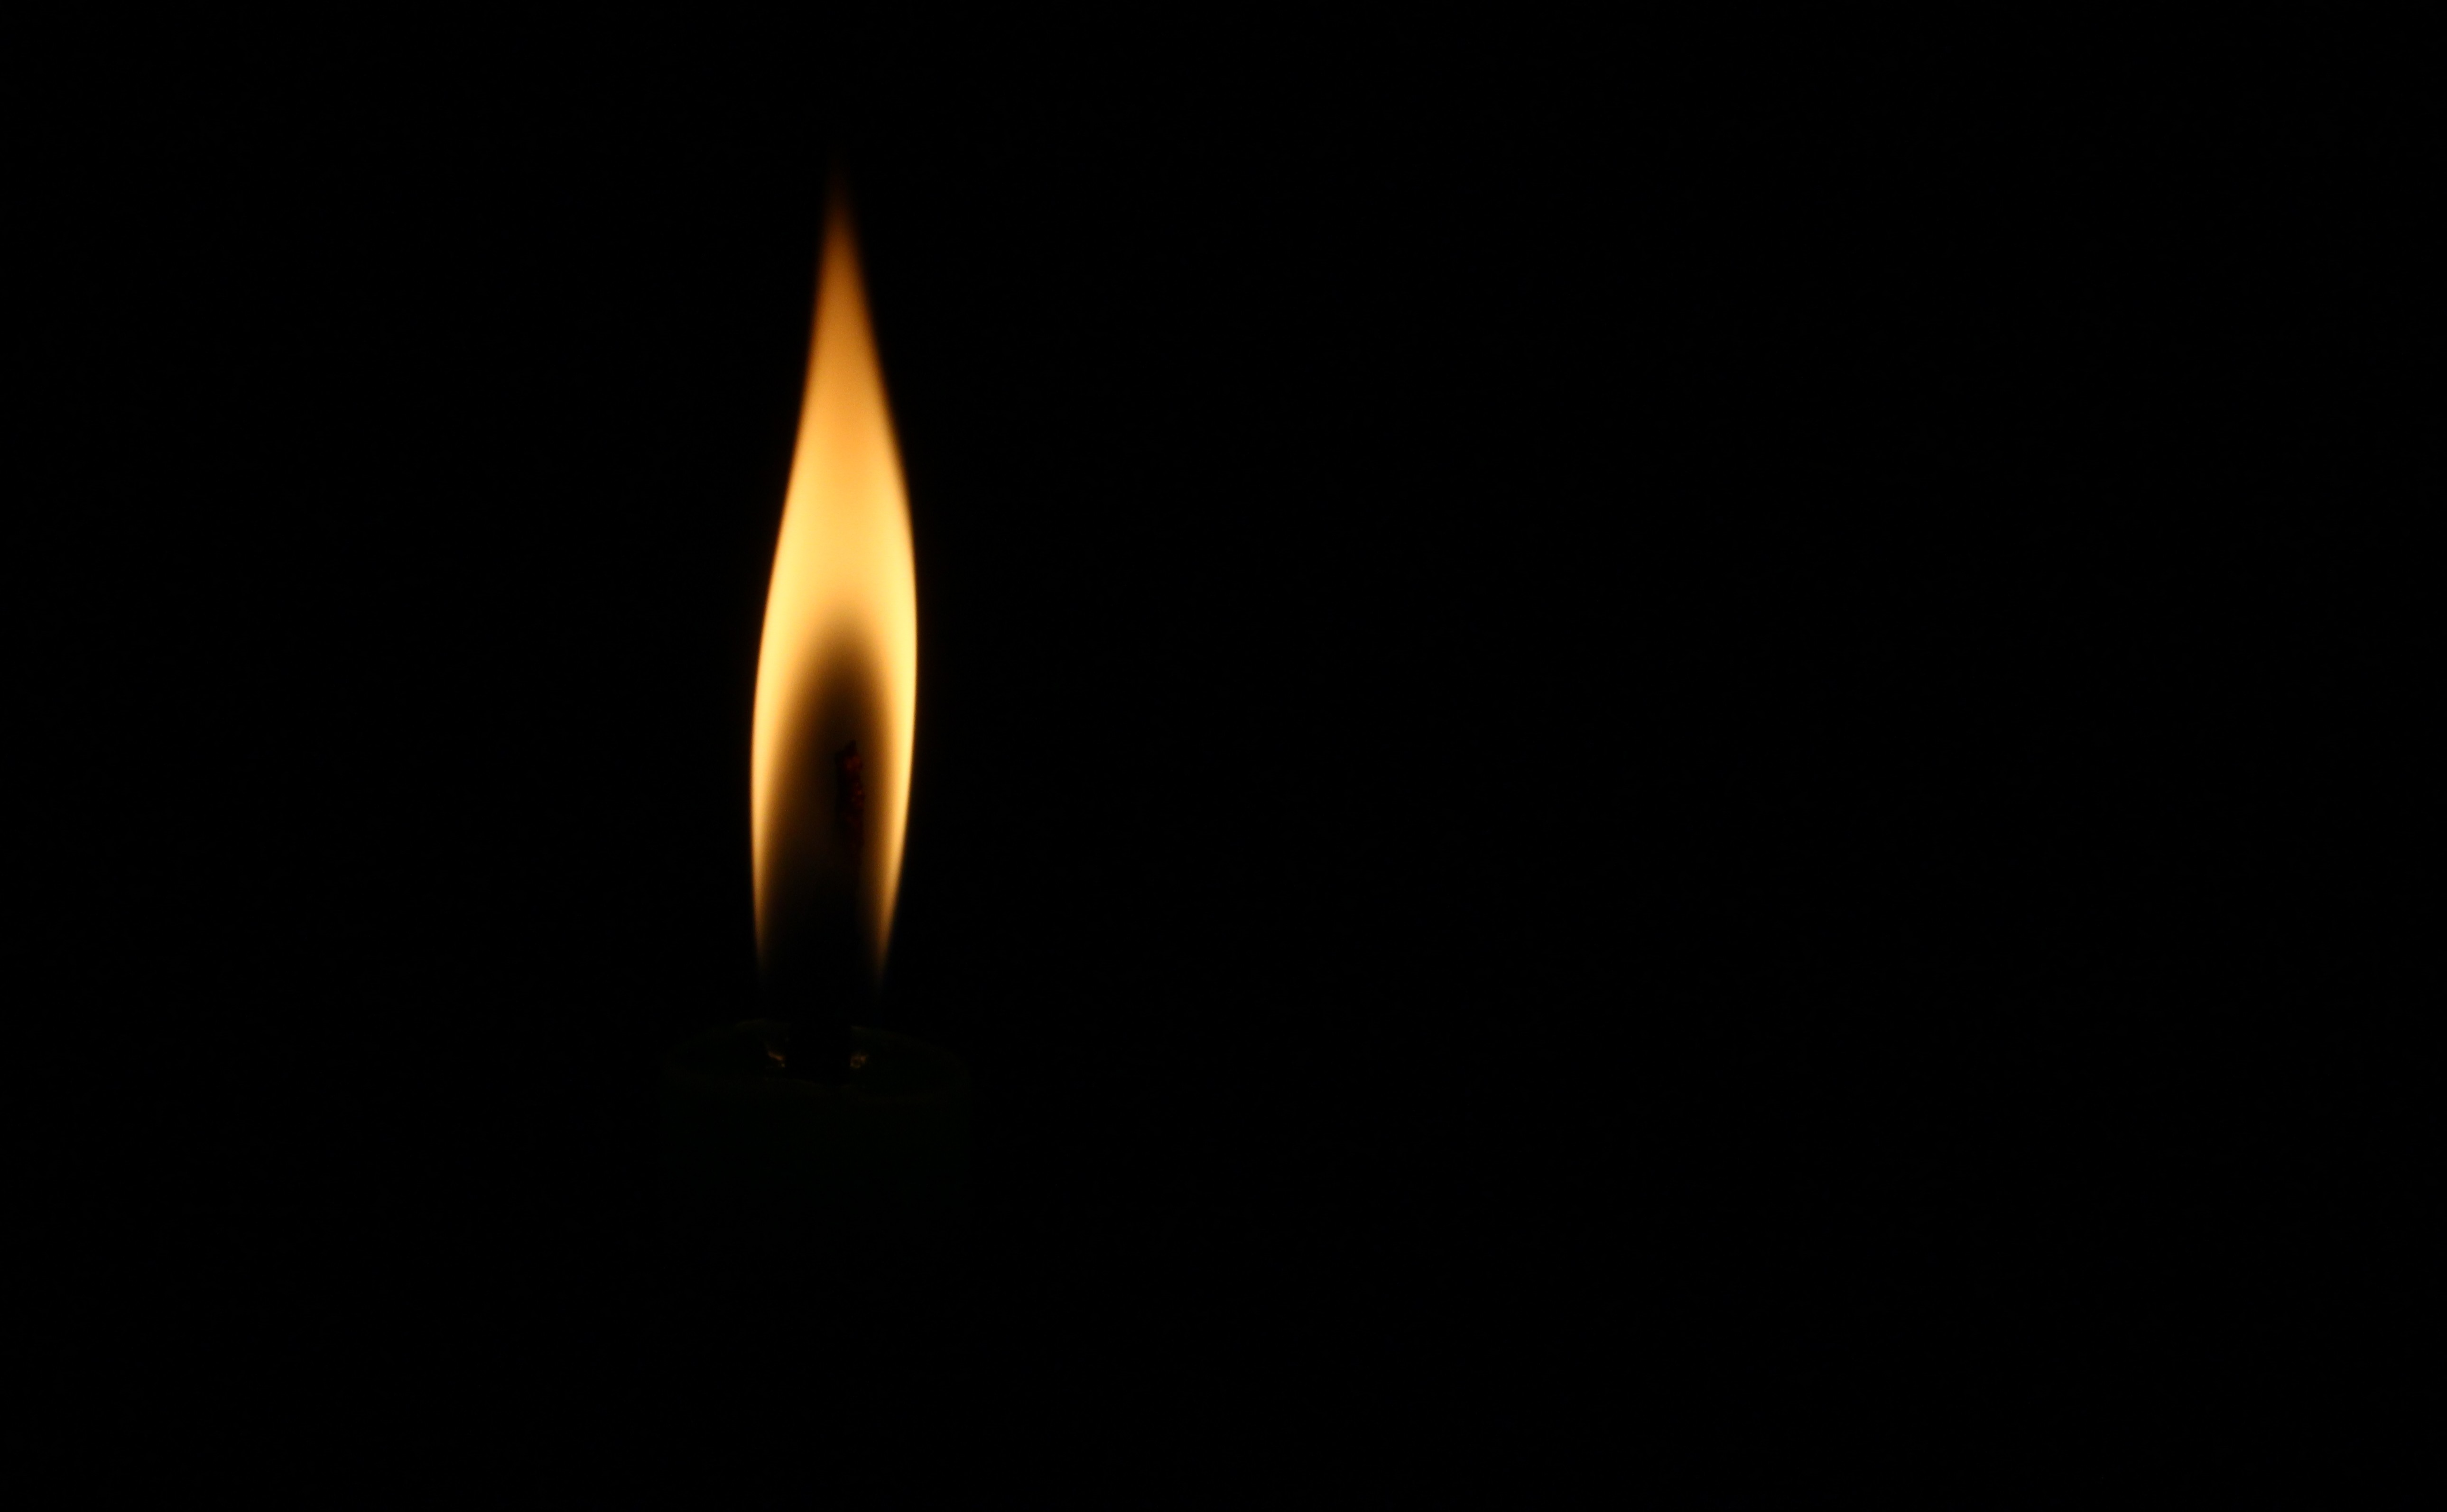 Black Flames Background